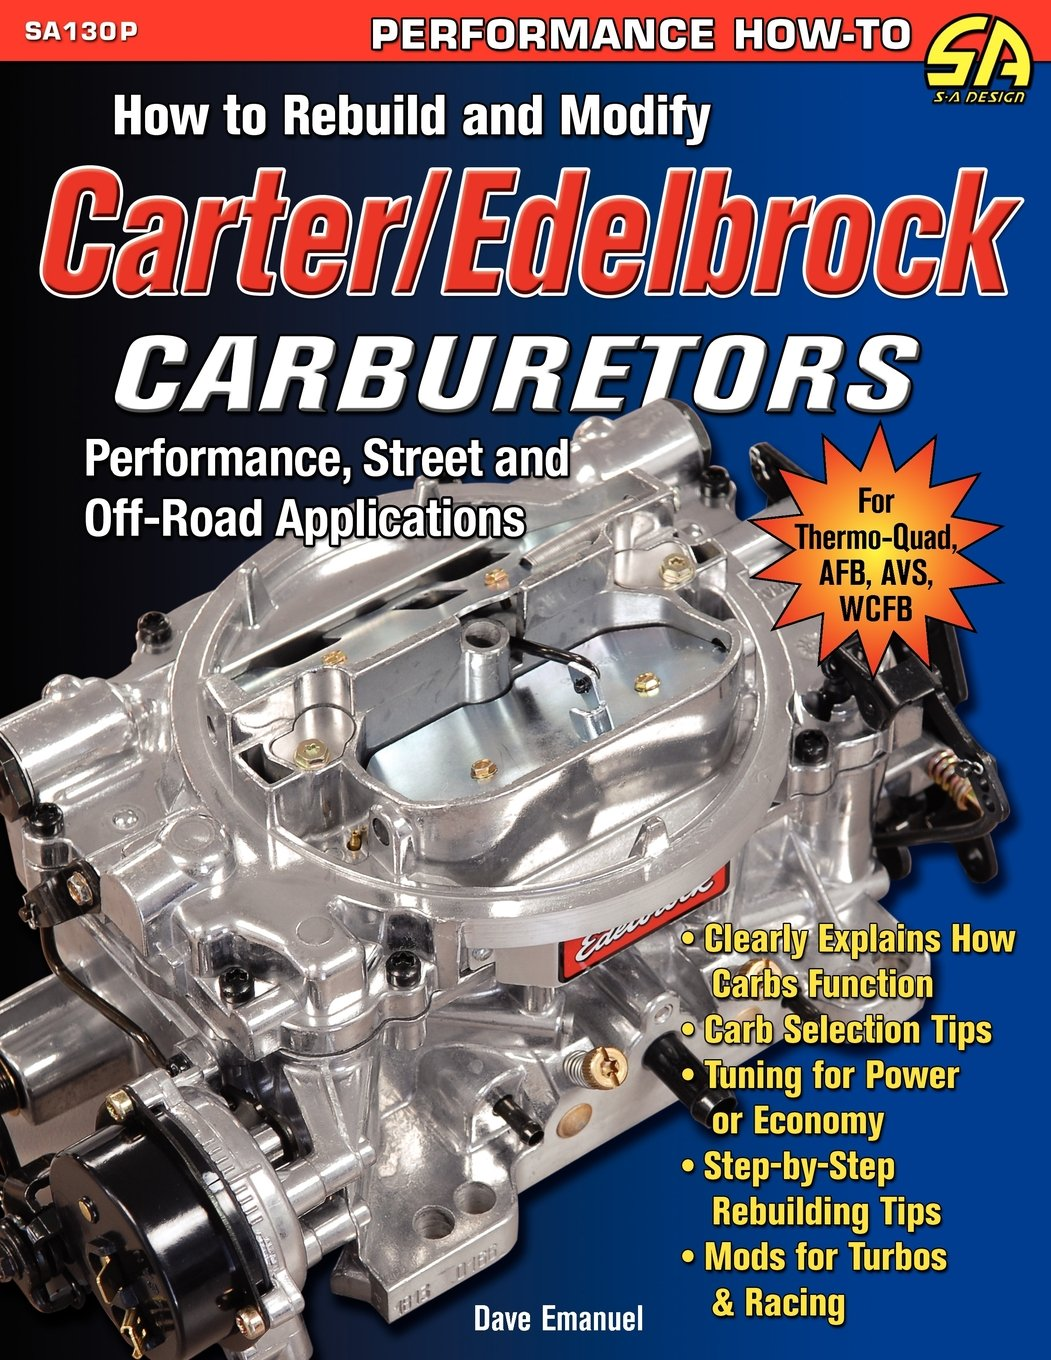 How to rebuild and modify carteredelbrock carburetors dave emanuel how to rebuild and modify carteredelbrock carburetors dave emanuel 9781613250679 amazon books fandeluxe Choice Image